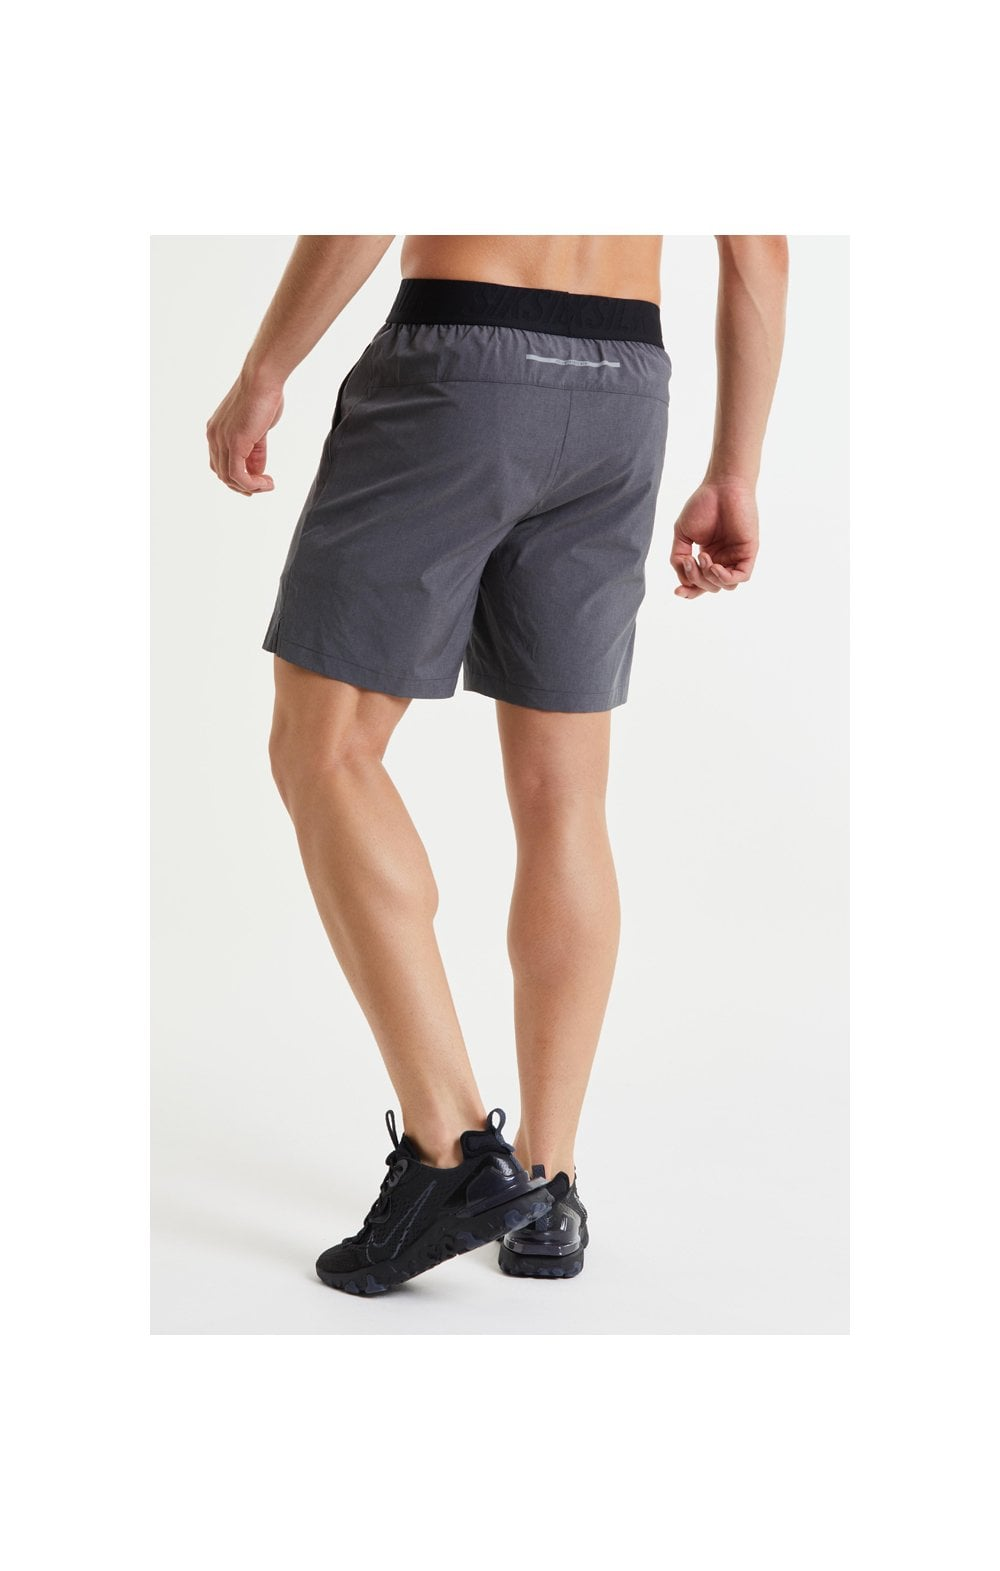 SikSilk Pressure Woven Long Shorts - Charcoal Marl (5)